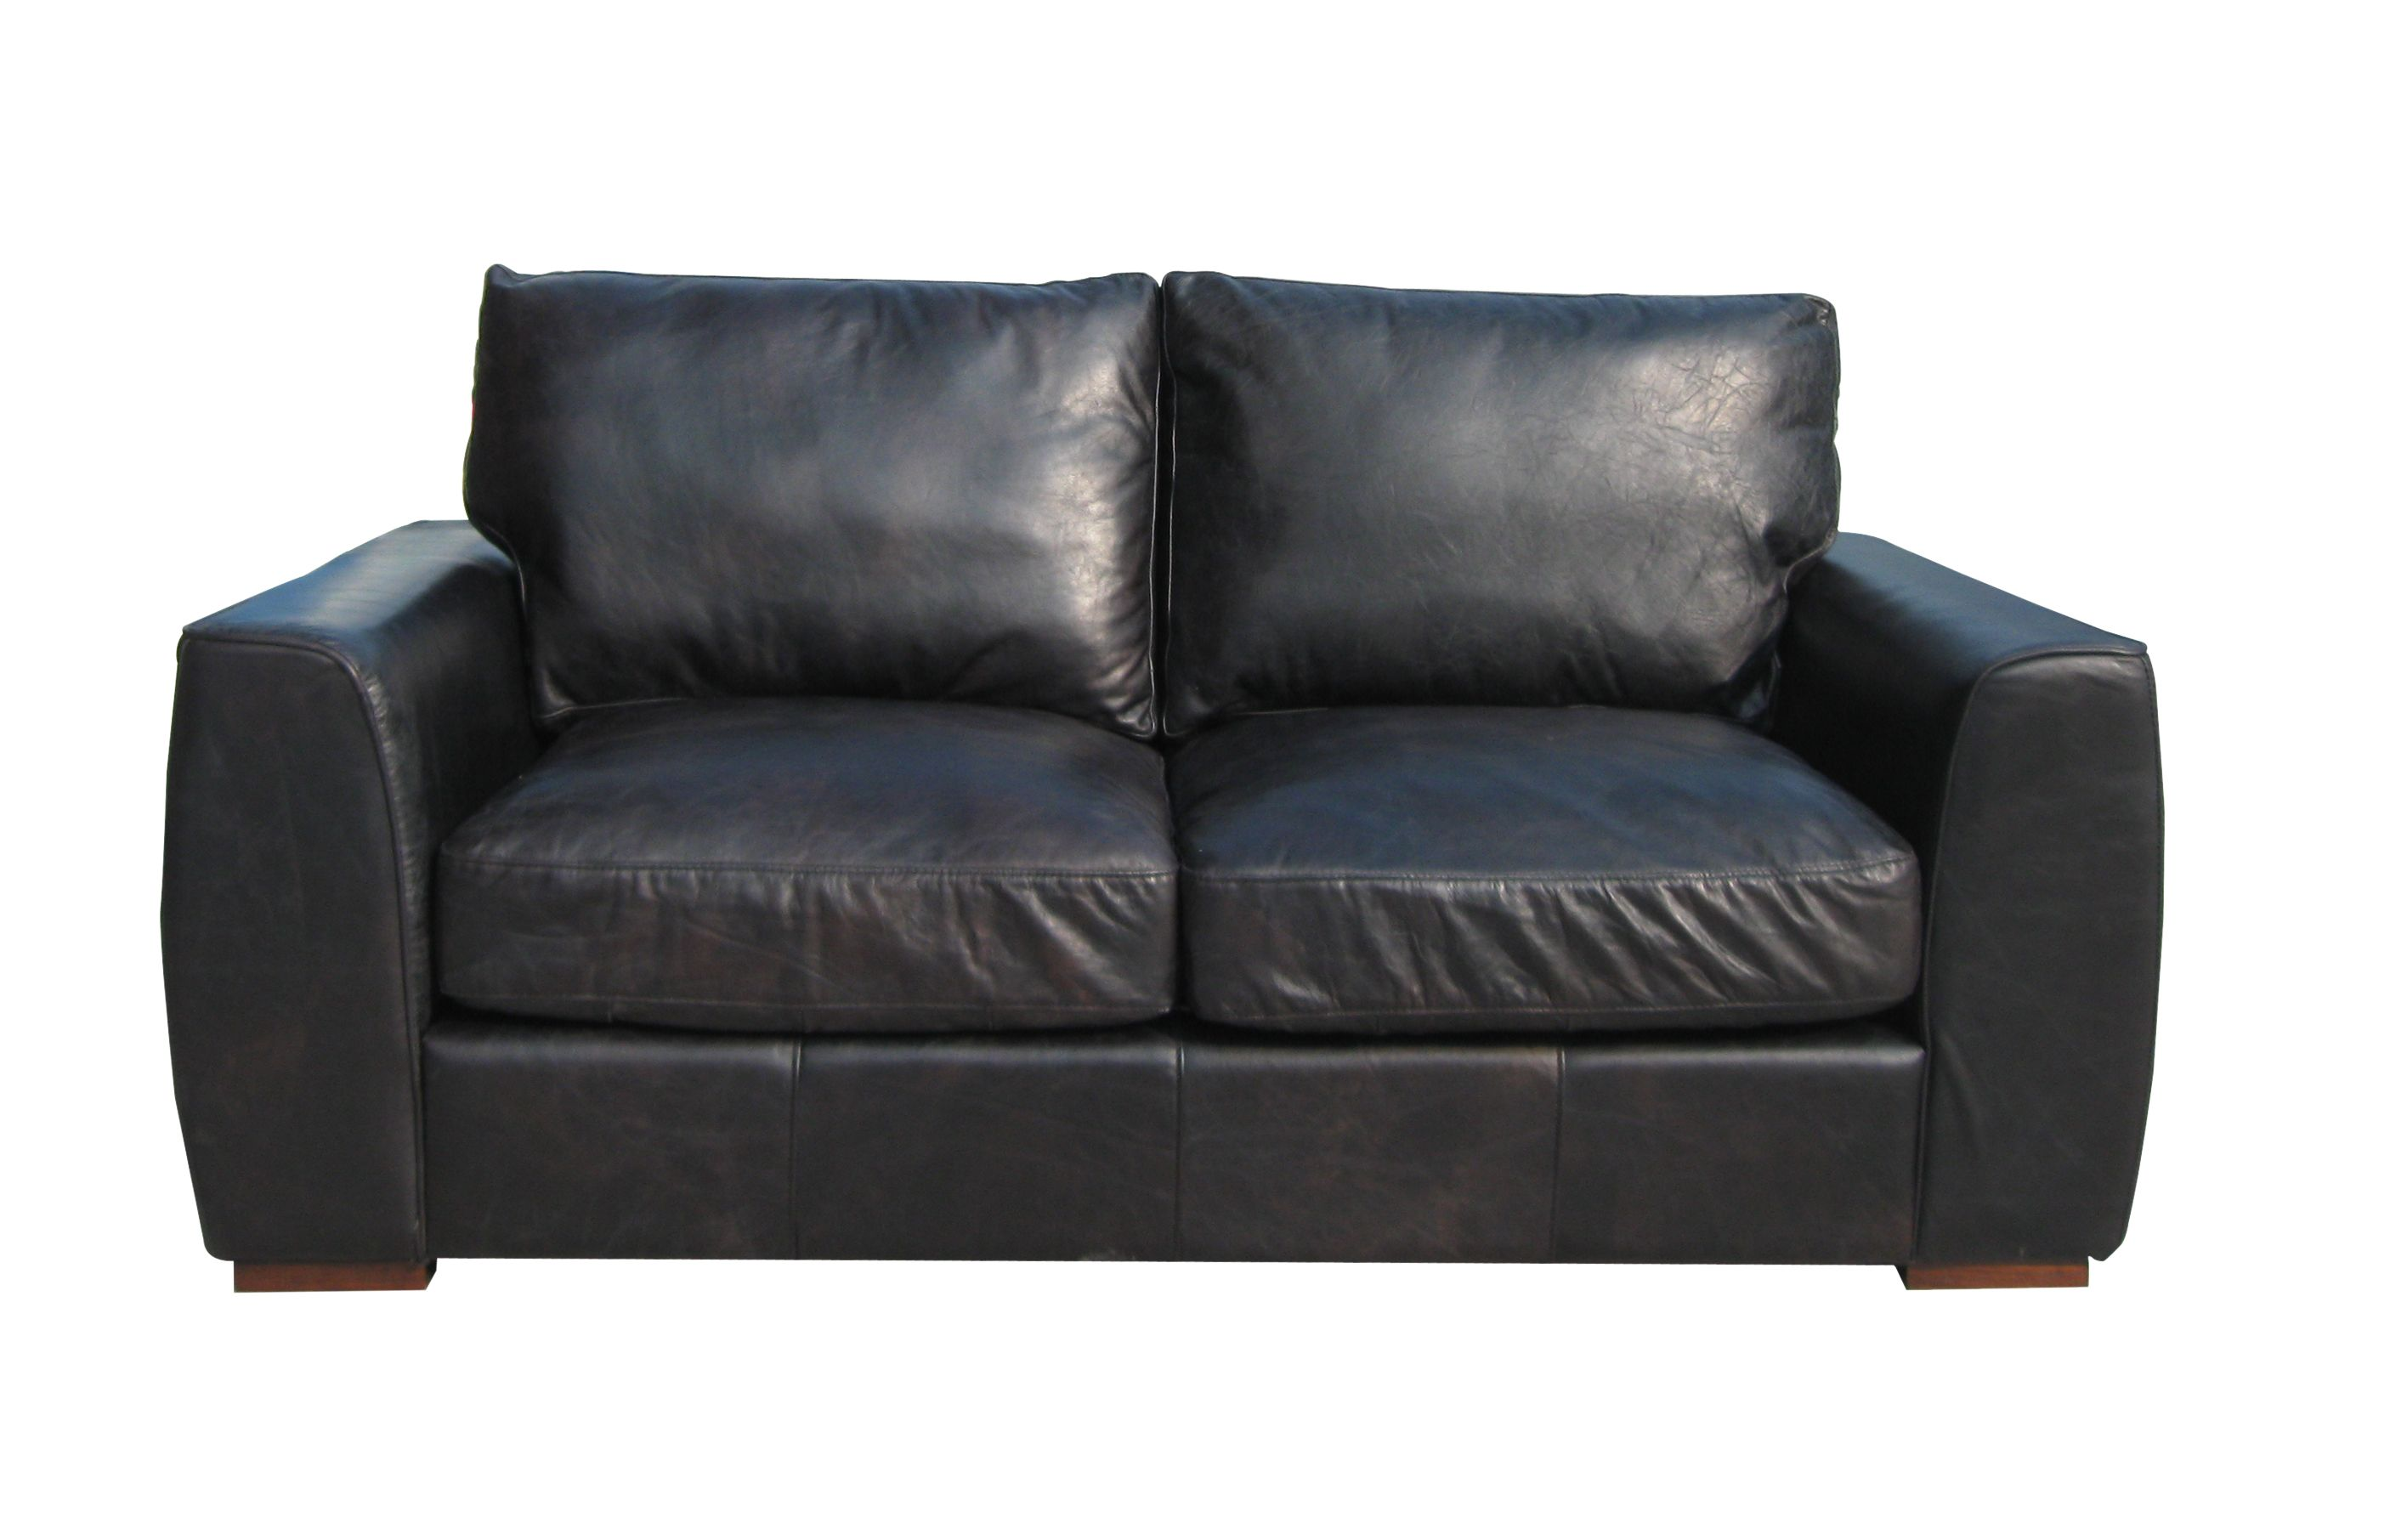 Colorado 2 seater medium sofa